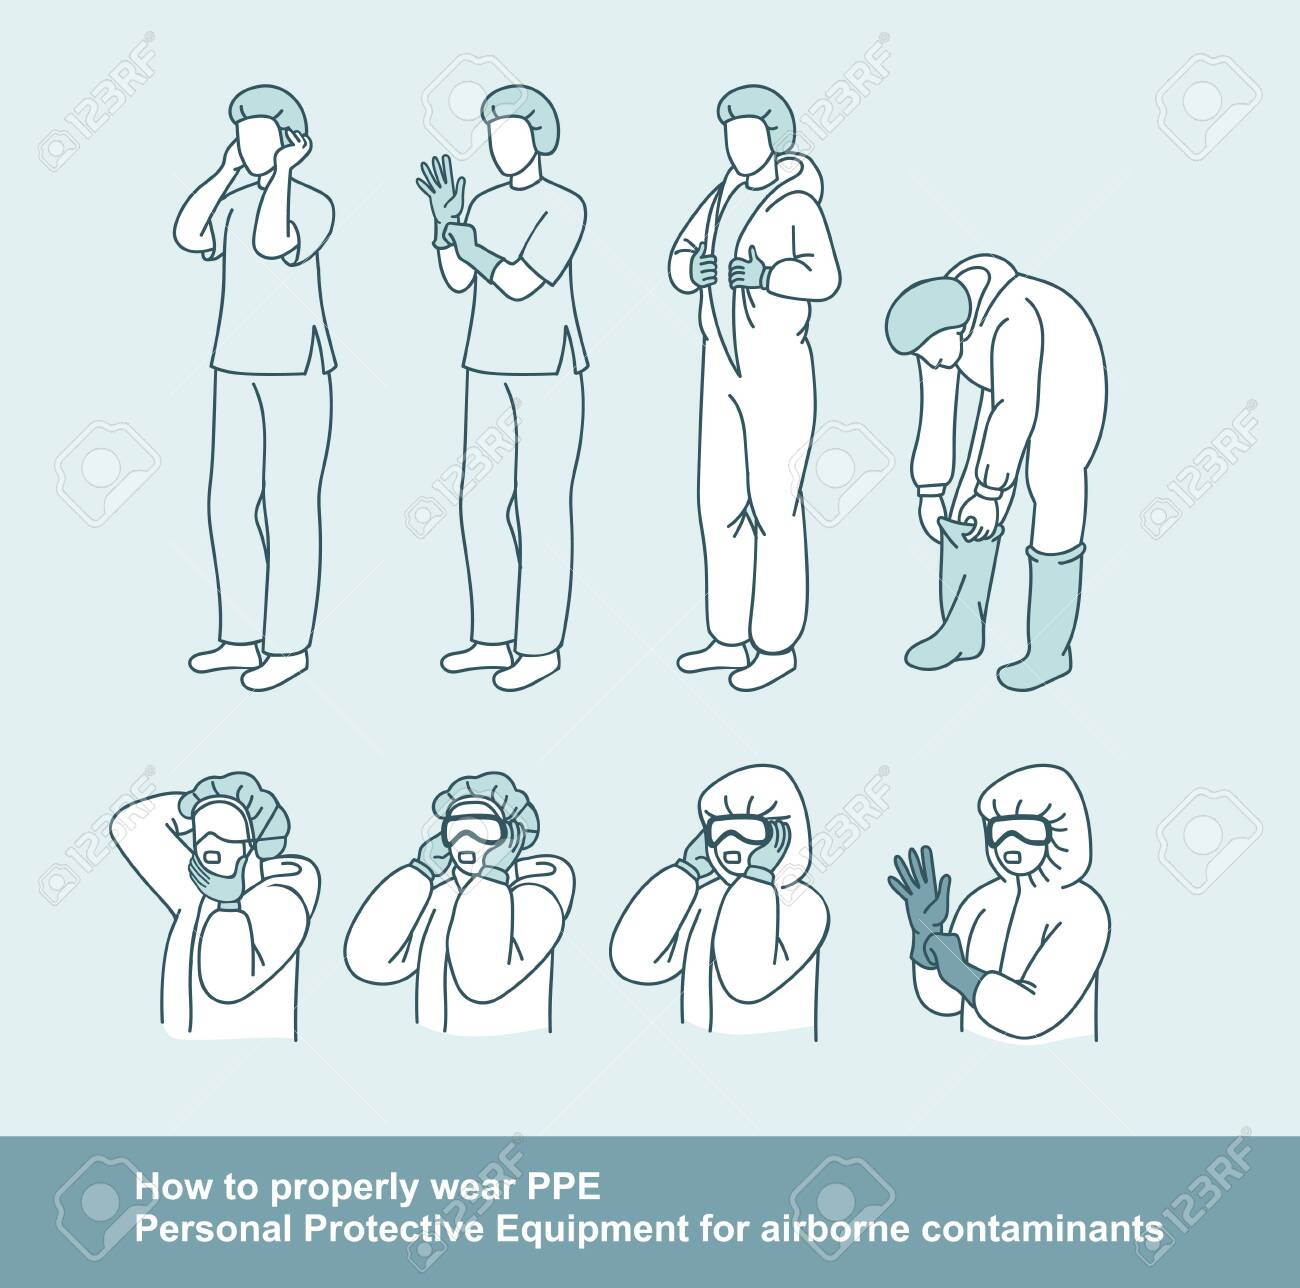 Steps How to properly wear personal protective equipment for airborne contaminants. Outline vector illustration - 146176873